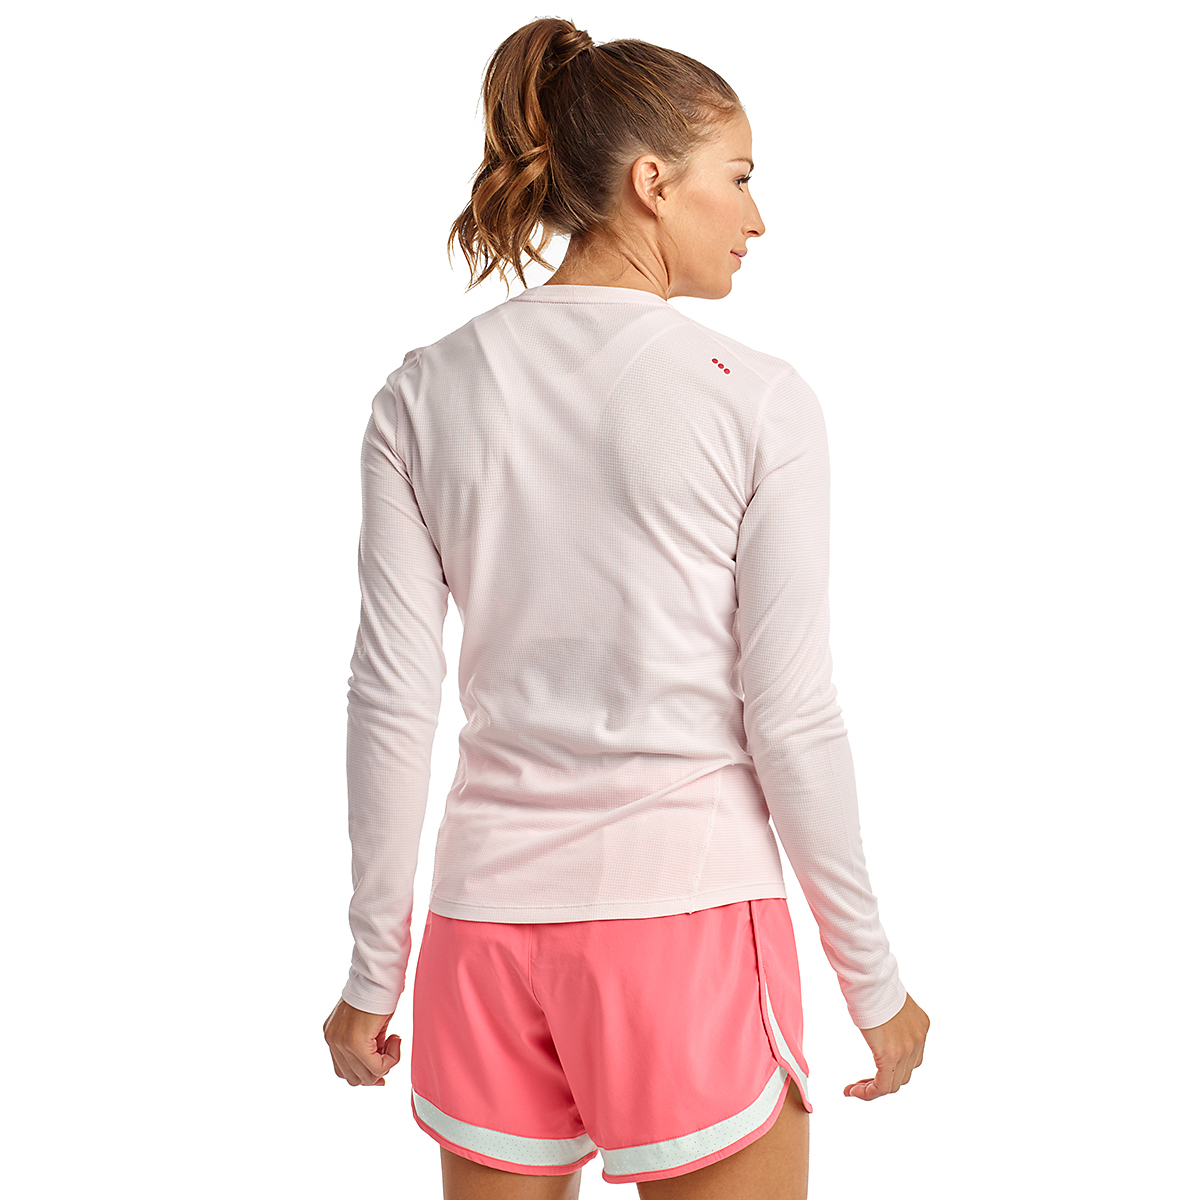 Women's Saucony Stopwatch Long Sleeve - Color: Barely Pink - Size: XXS, Barely Pink, large, image 2